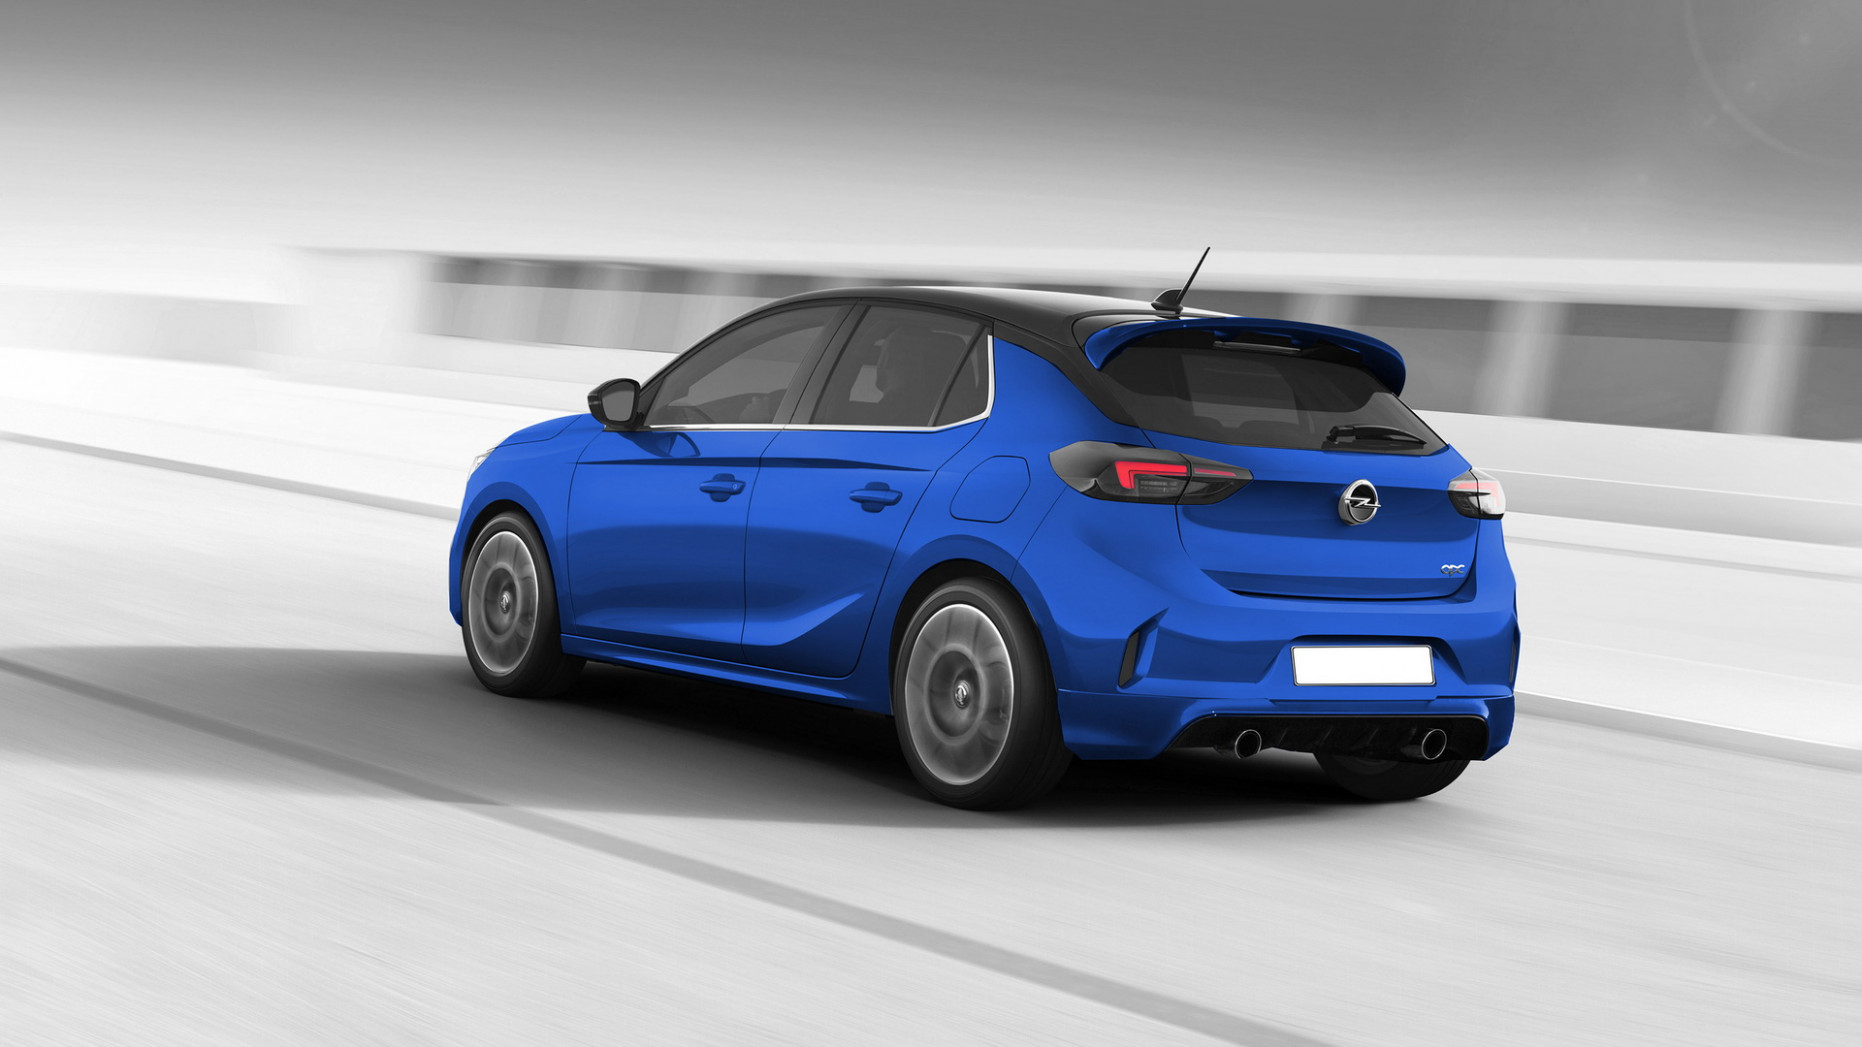 Redesign and Review 2022 Vauxhall Corsa VXR